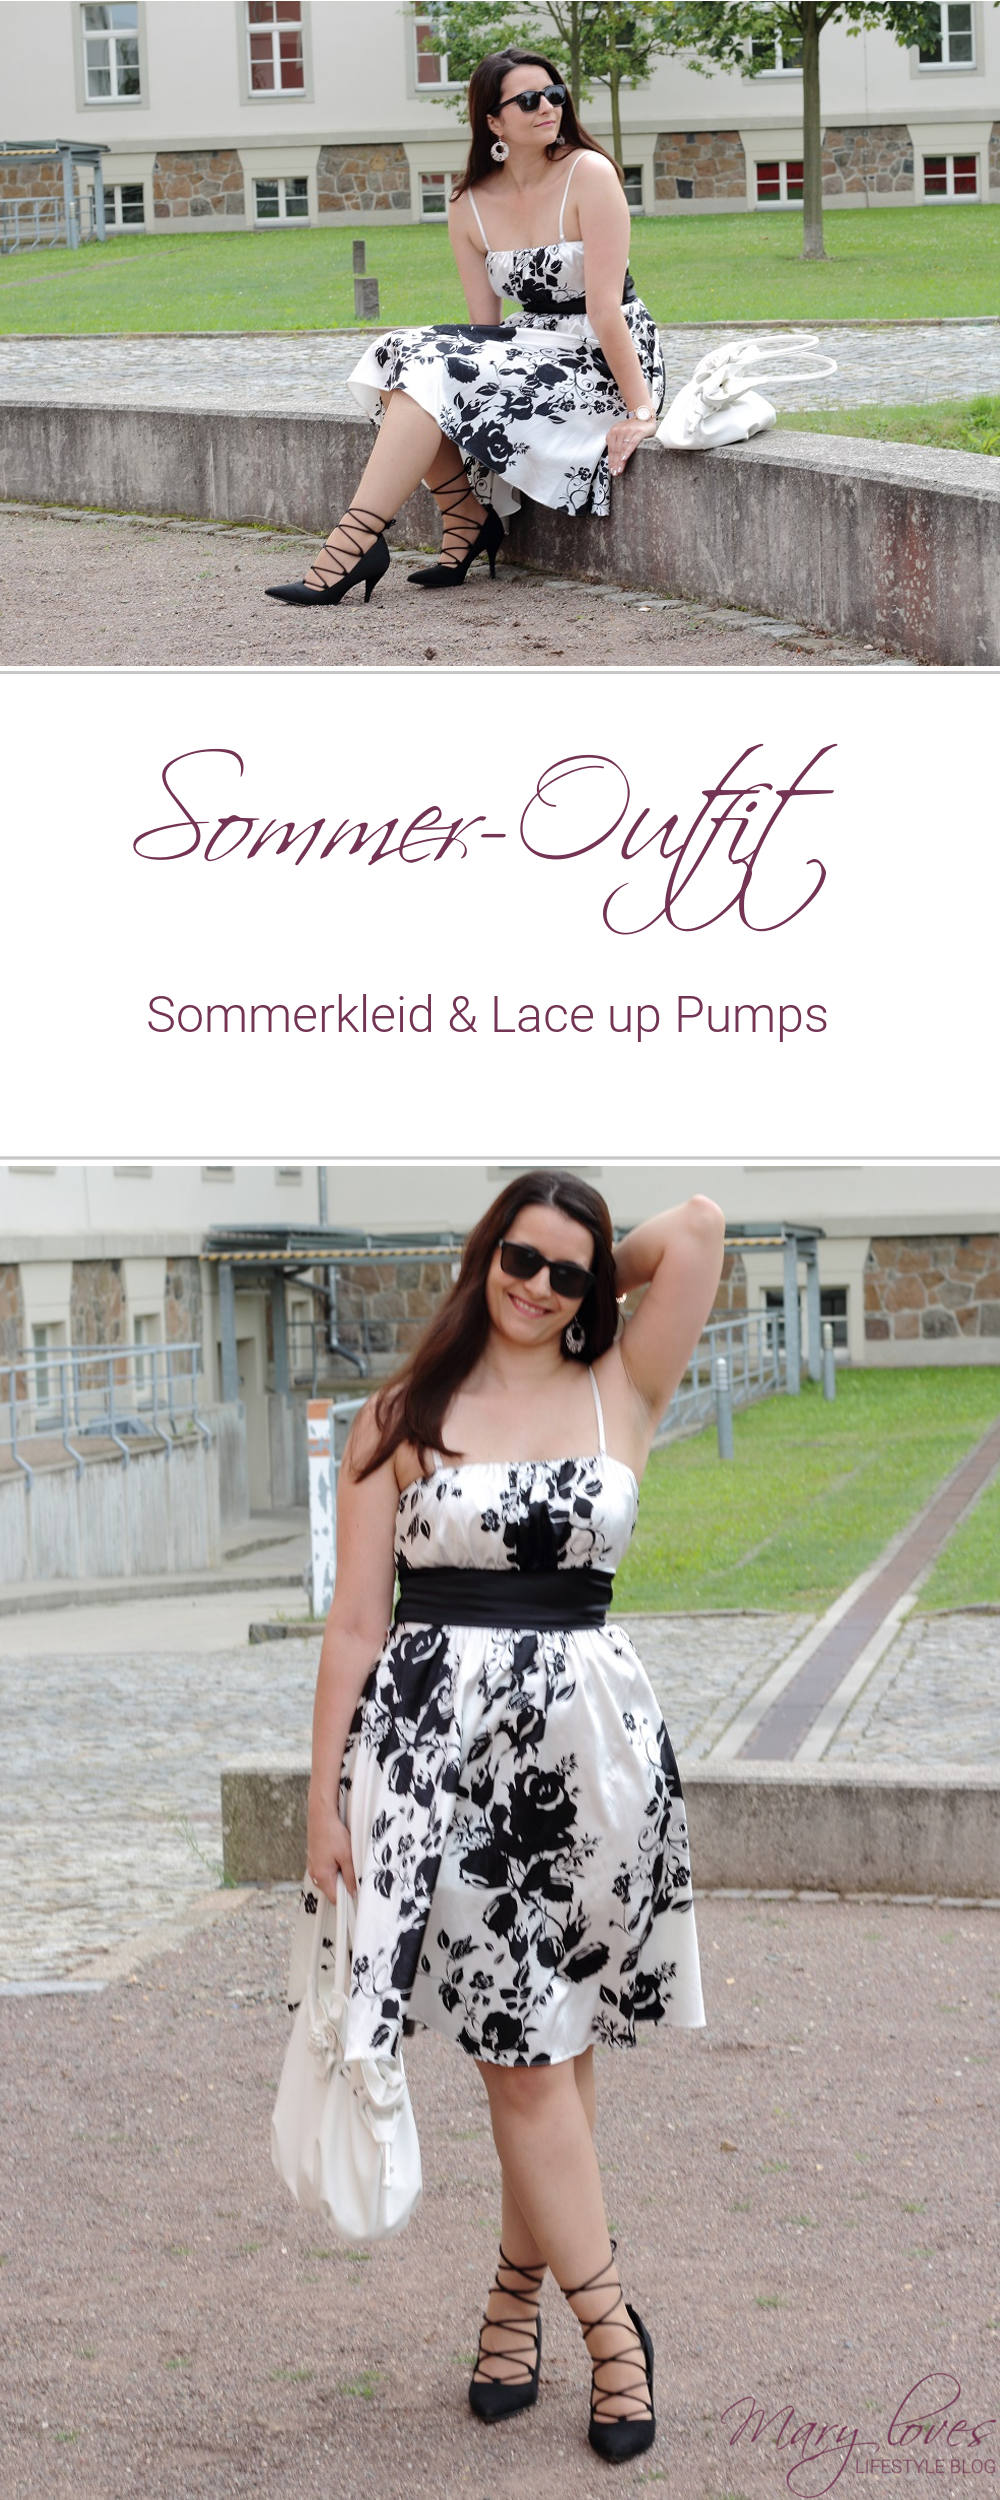 [Outfit] Sommerkleid und Lace up Pumps